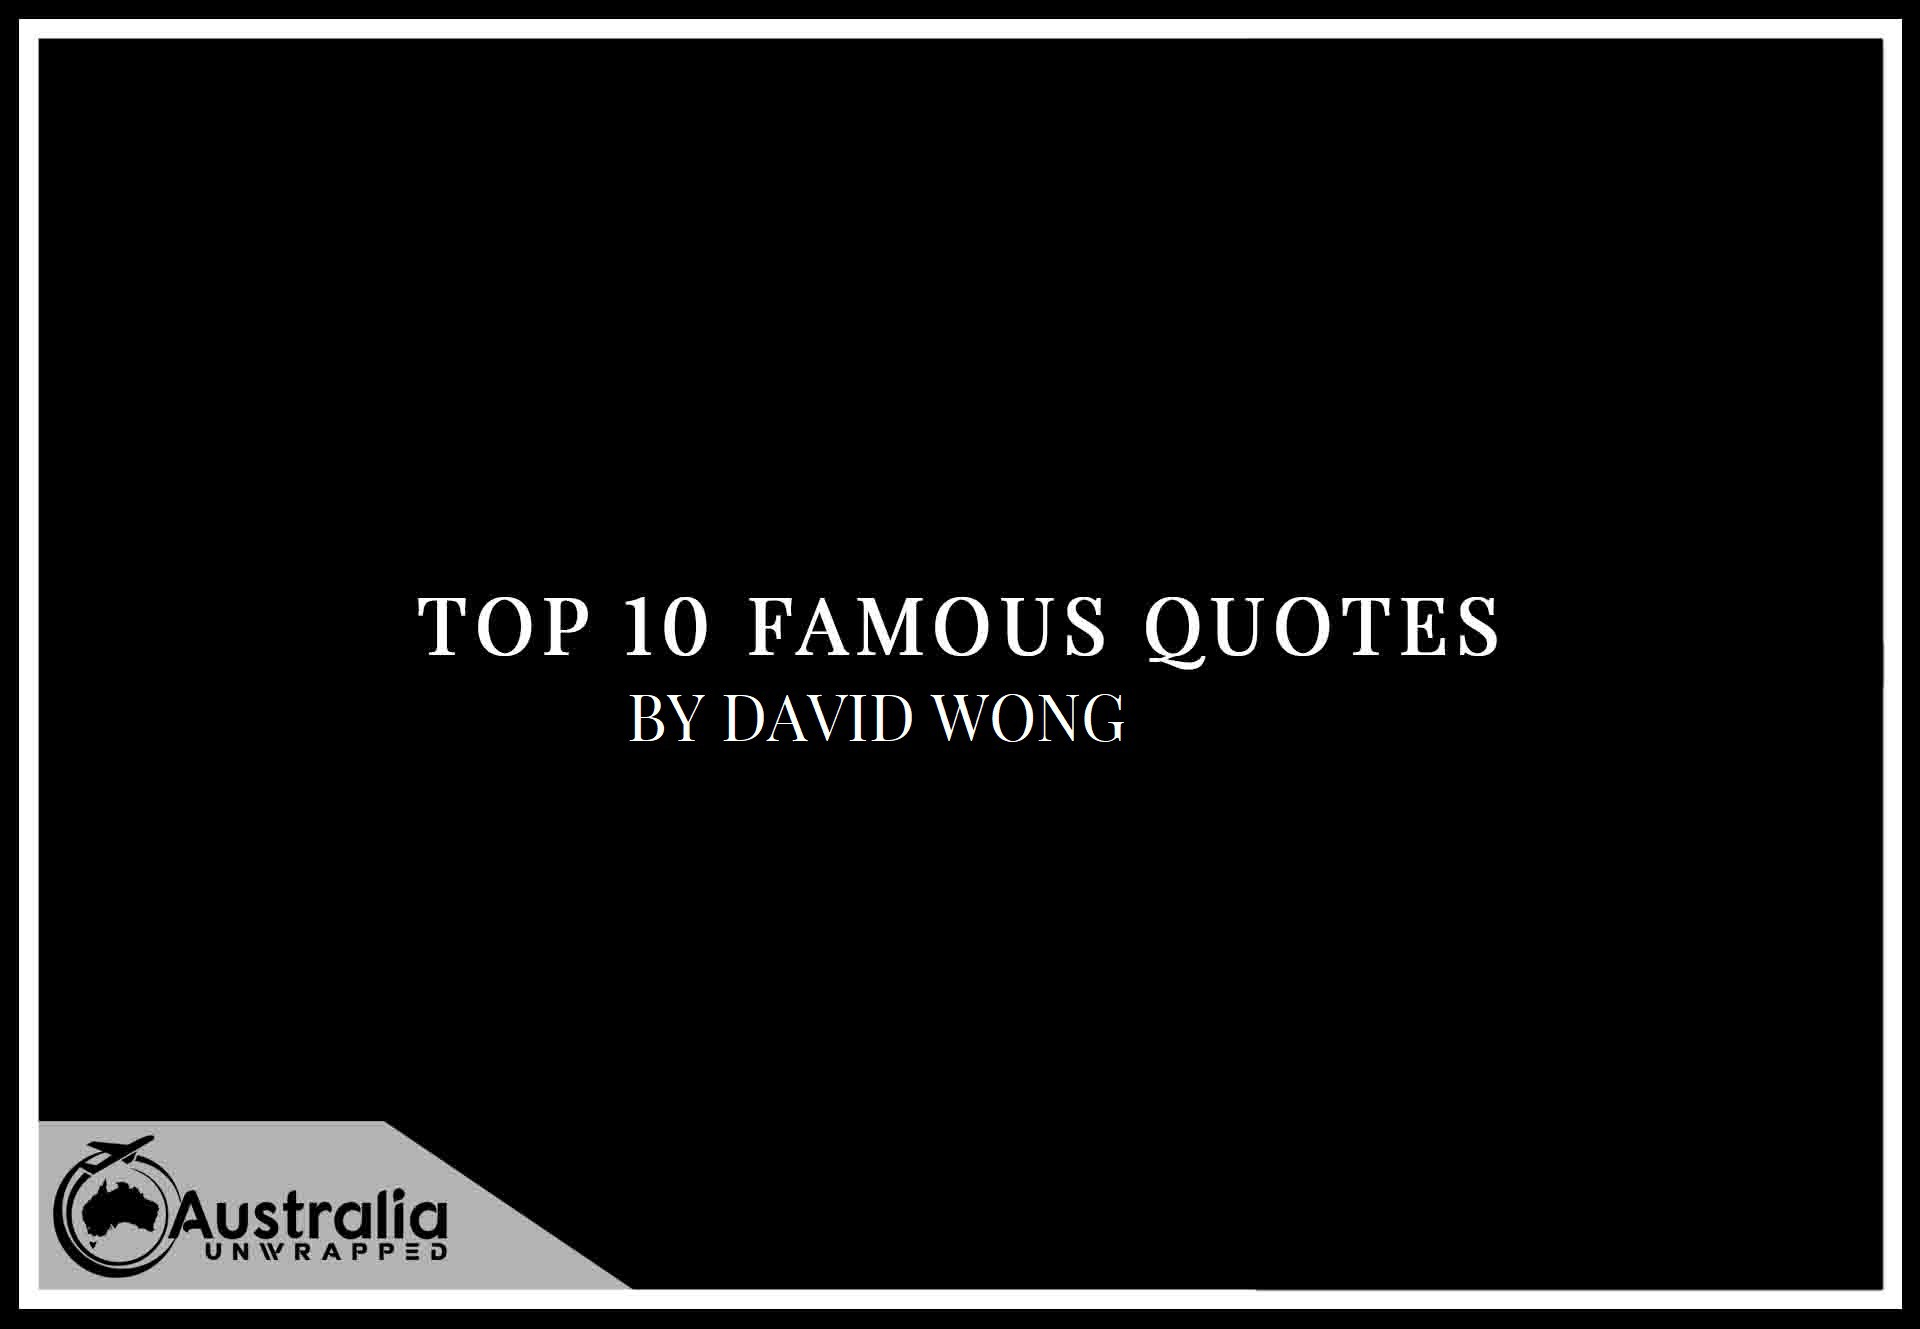 Top 10 Famous Quotes by Author David Wong